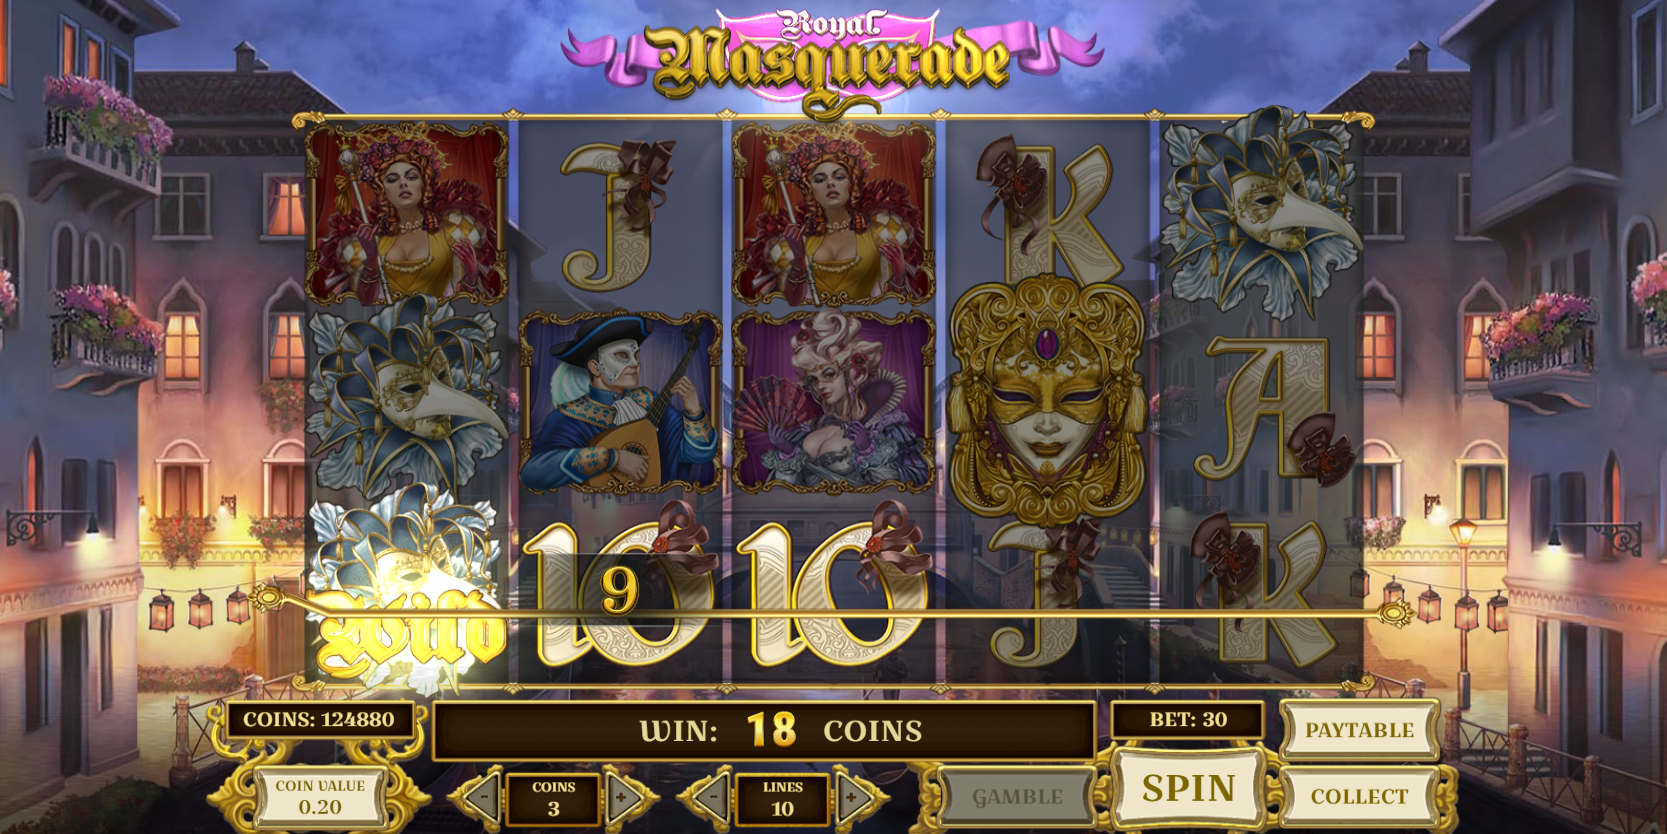 Spiele Royal Masquerade - Video Slots Online